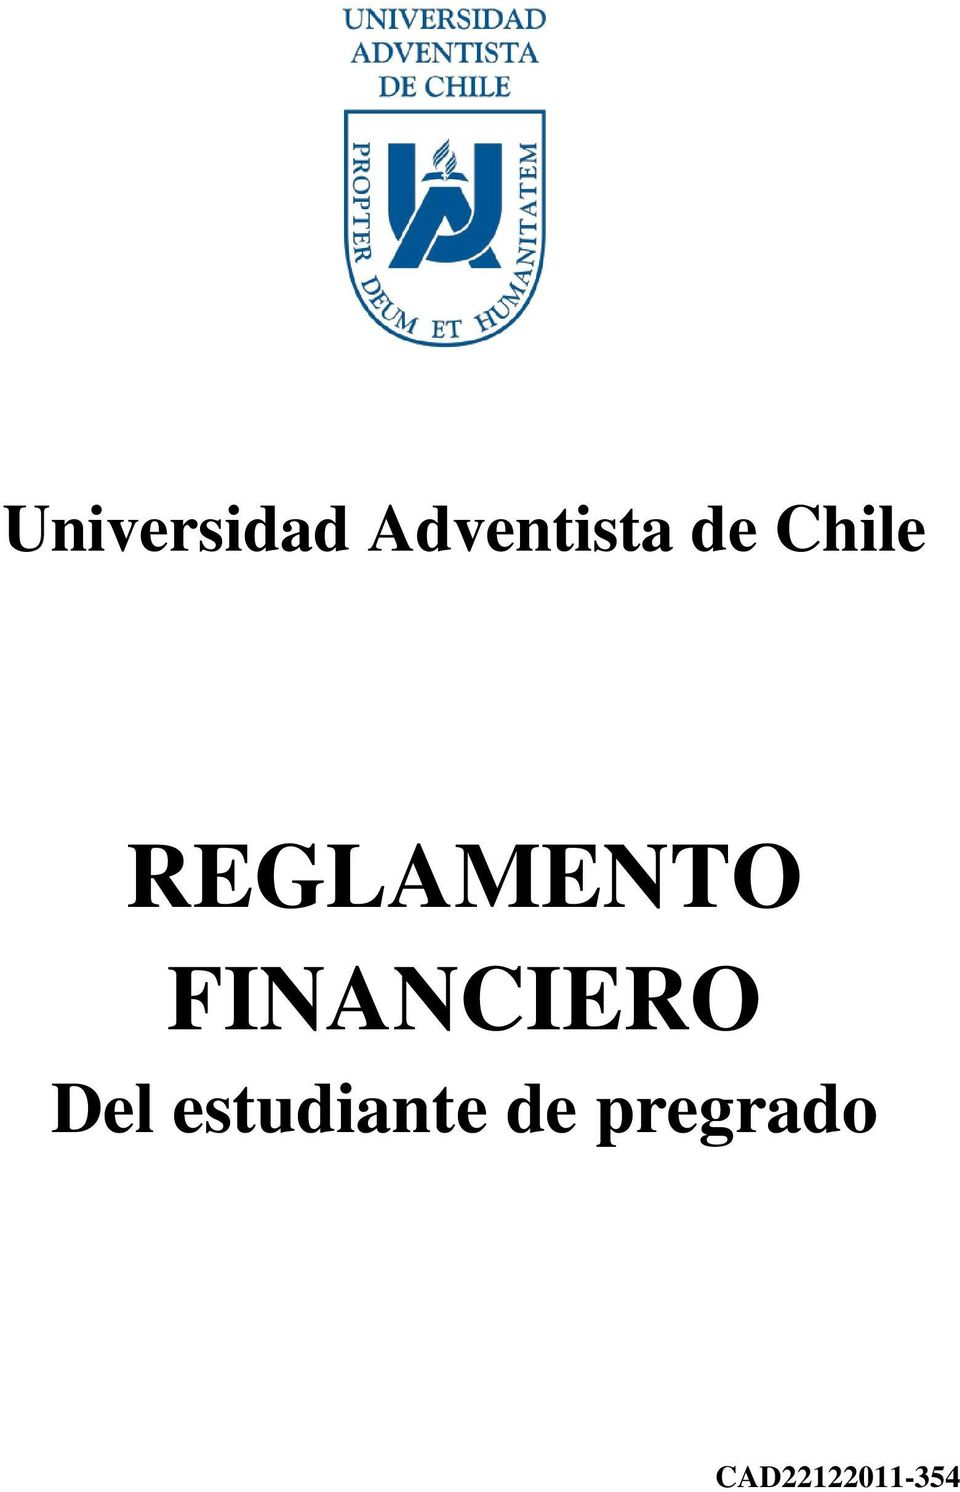 FINANCIERO Del